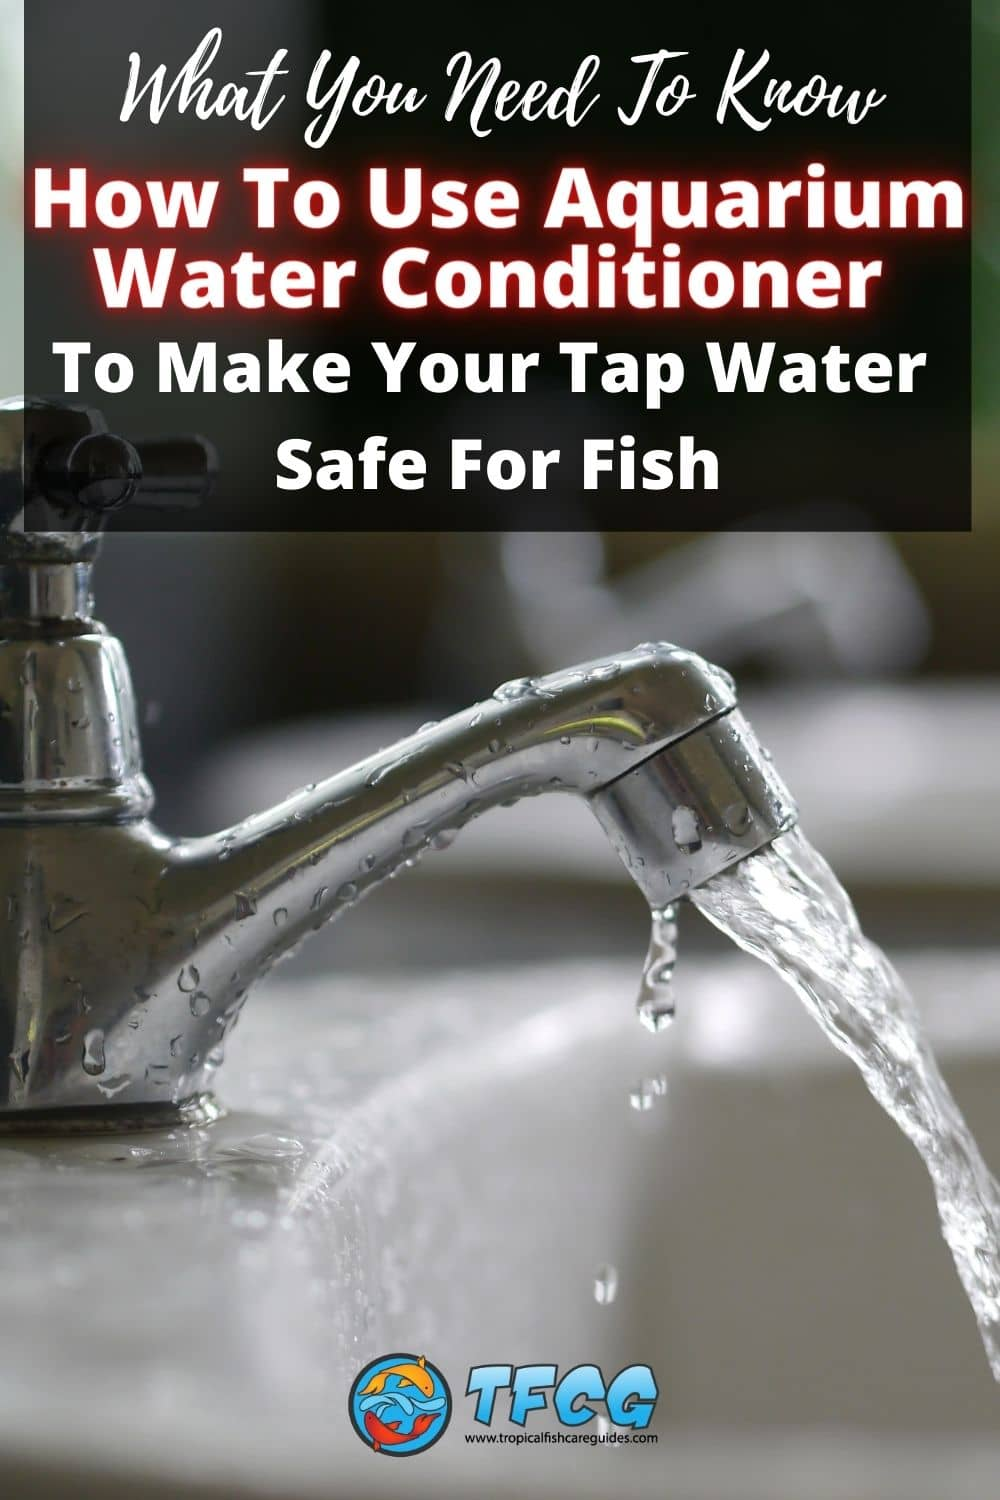 How To Use Aquarium Water Conditioner To Make Your Tap Water Safe For Fish